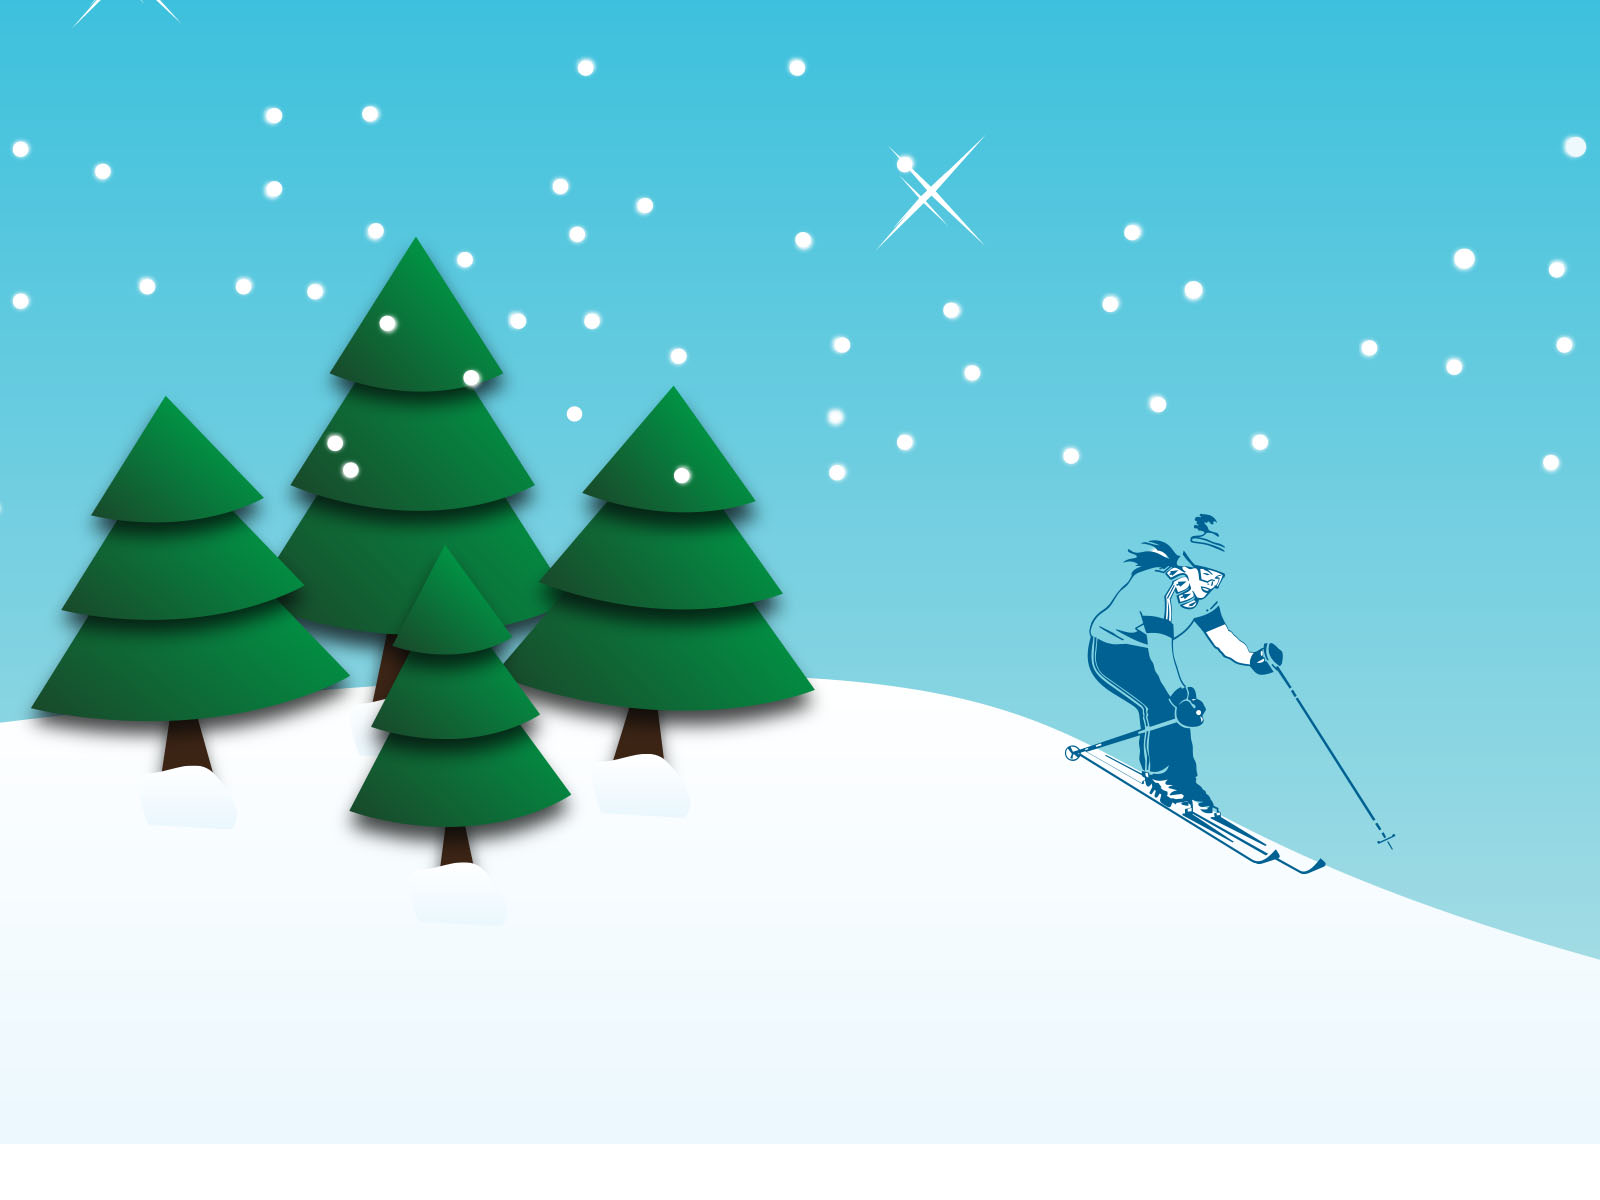 snowboarding backgrounds blue green sports white